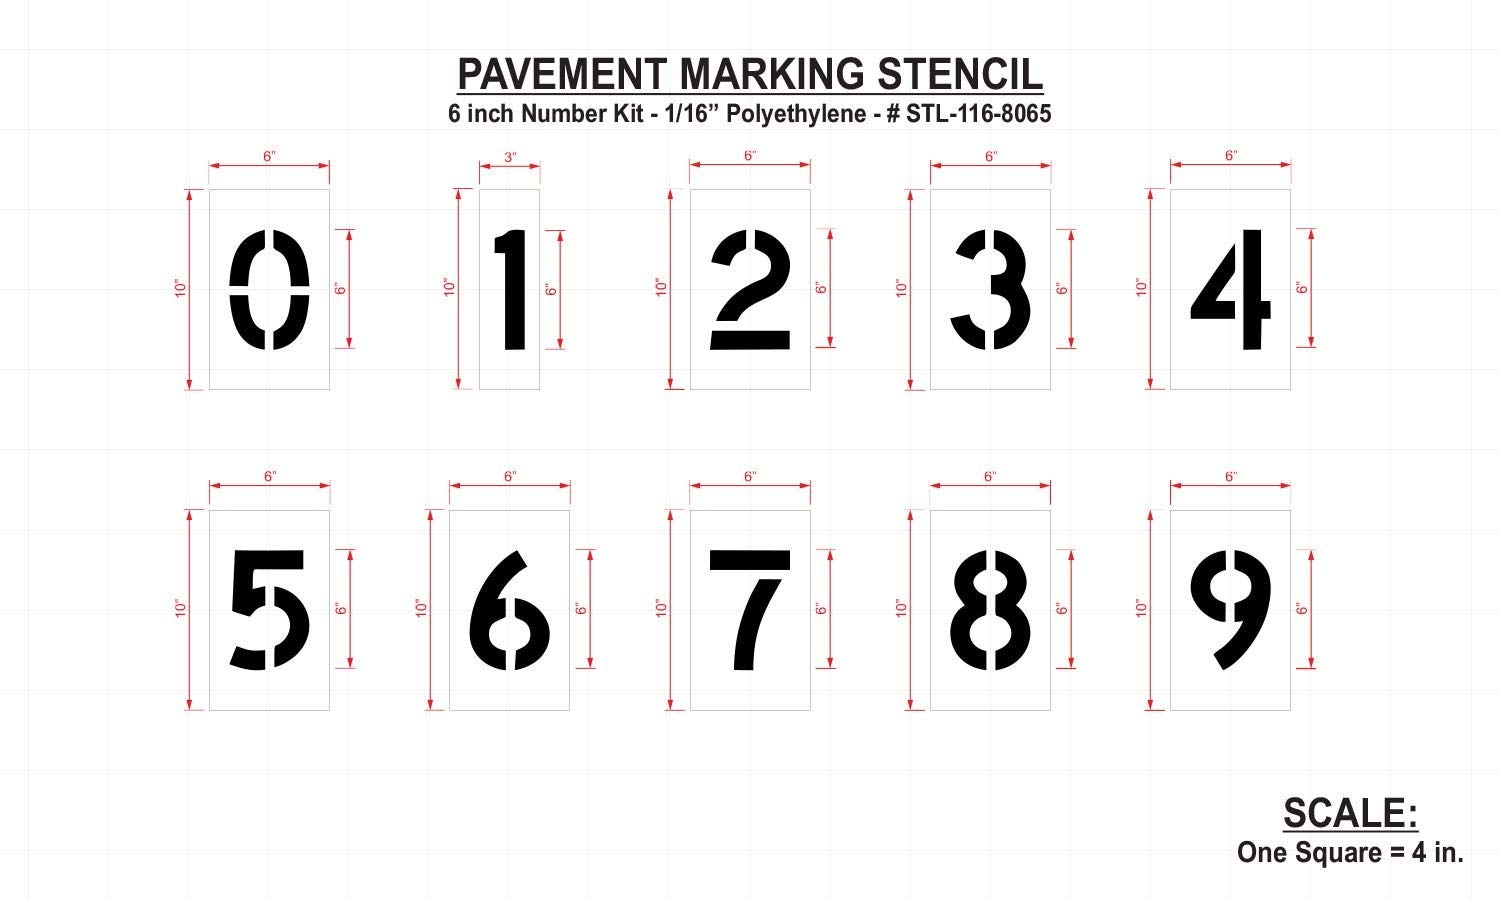 Rae Pavement Stencil, Numbers, 6'', Low Density Polyethylene, 1 EA - STL-116-8060